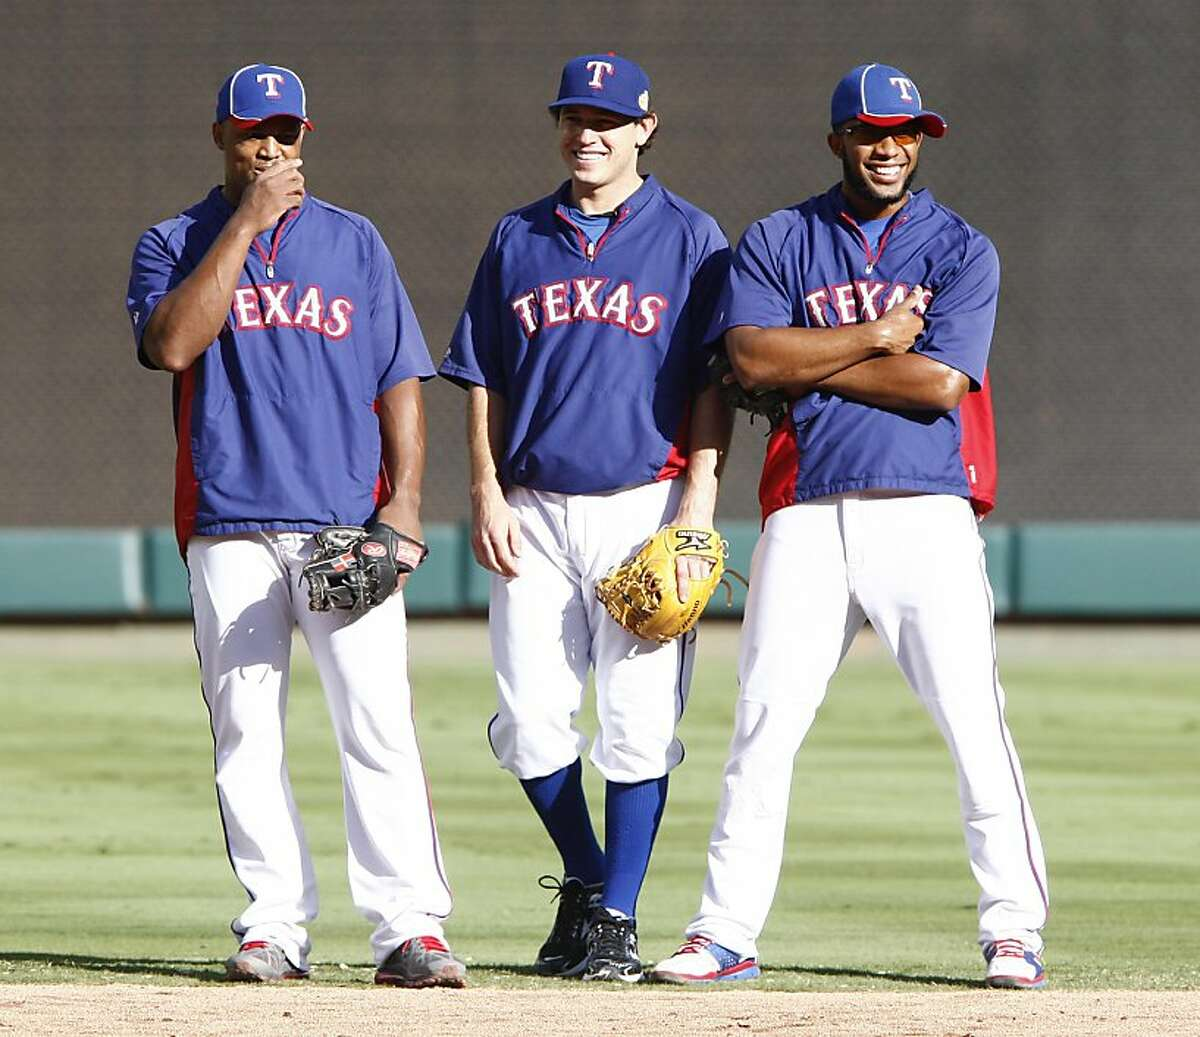 From left, Texas Rangers' Adrian Beltre, Ian Kinsler and Elvis Andrus during workouts at the Rangers Ballpark in Arlington on Friday October 21, 2011, in Arlington, Texas. The Rangers play host to the St. Louis Cardinals in Game 3 of the World Series on Saturday with the series tied, 1-1. (Richard W. Rodriguez/Fort Worth Star-Telegram/MCT)